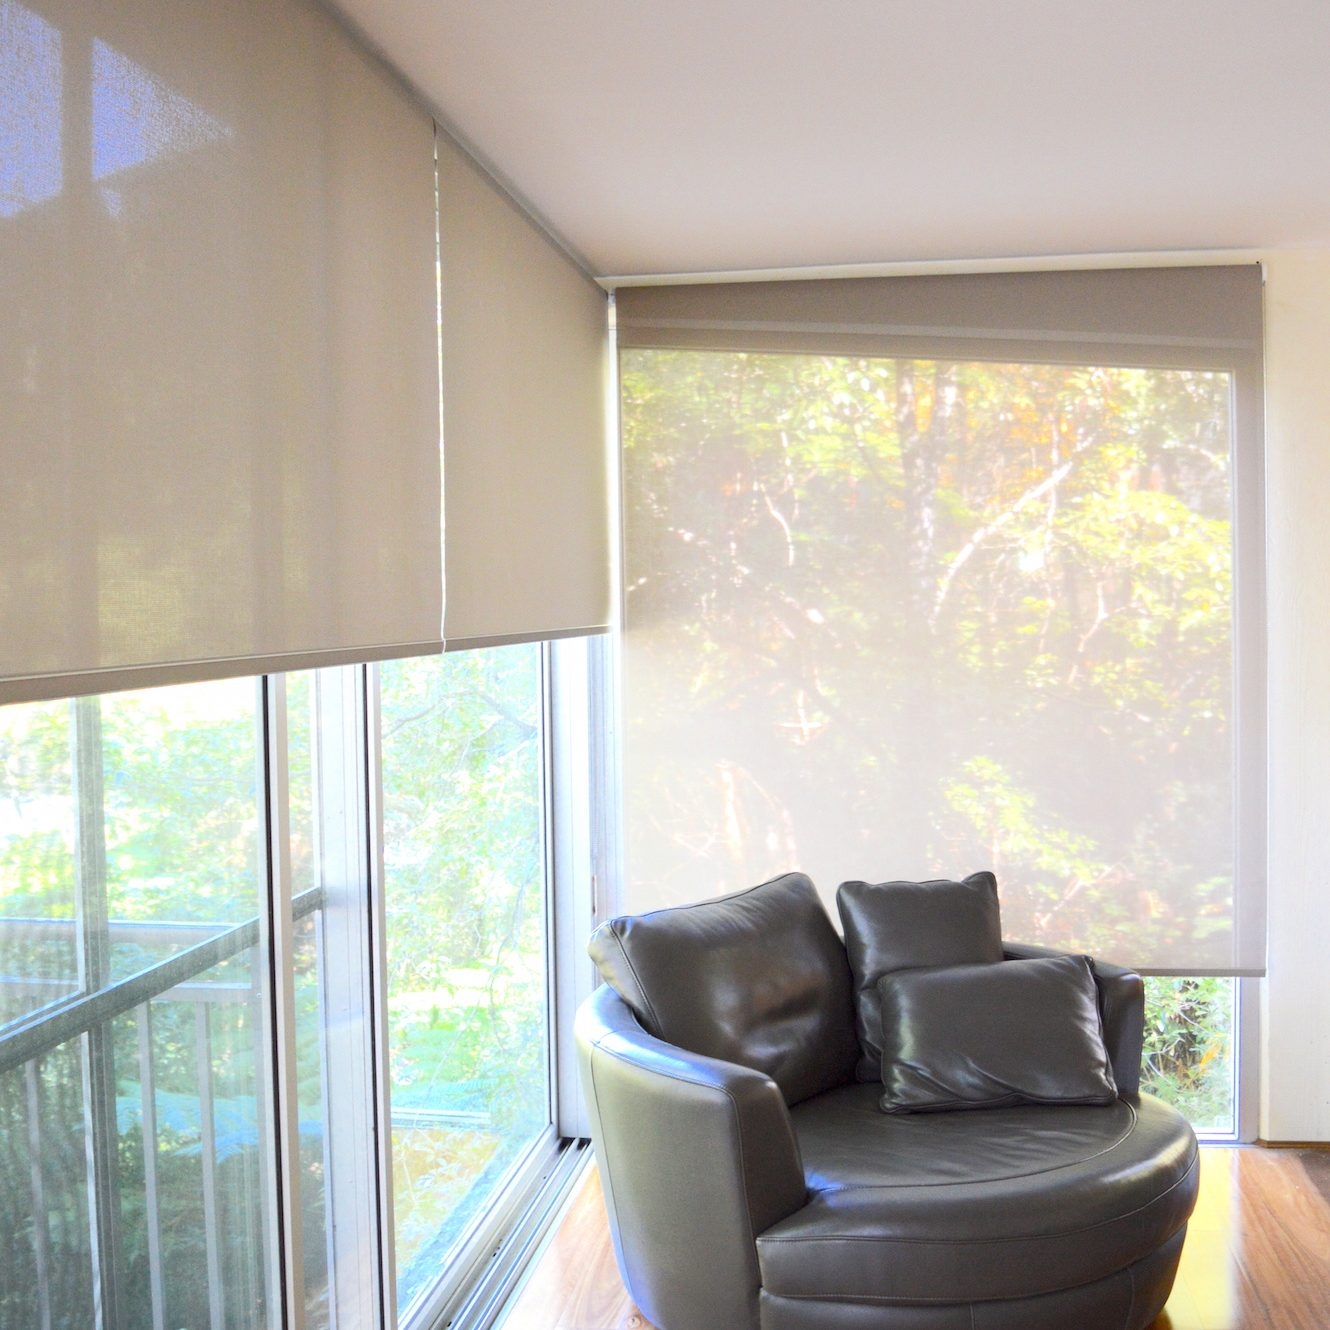 Translucent roller blinds forward rolled